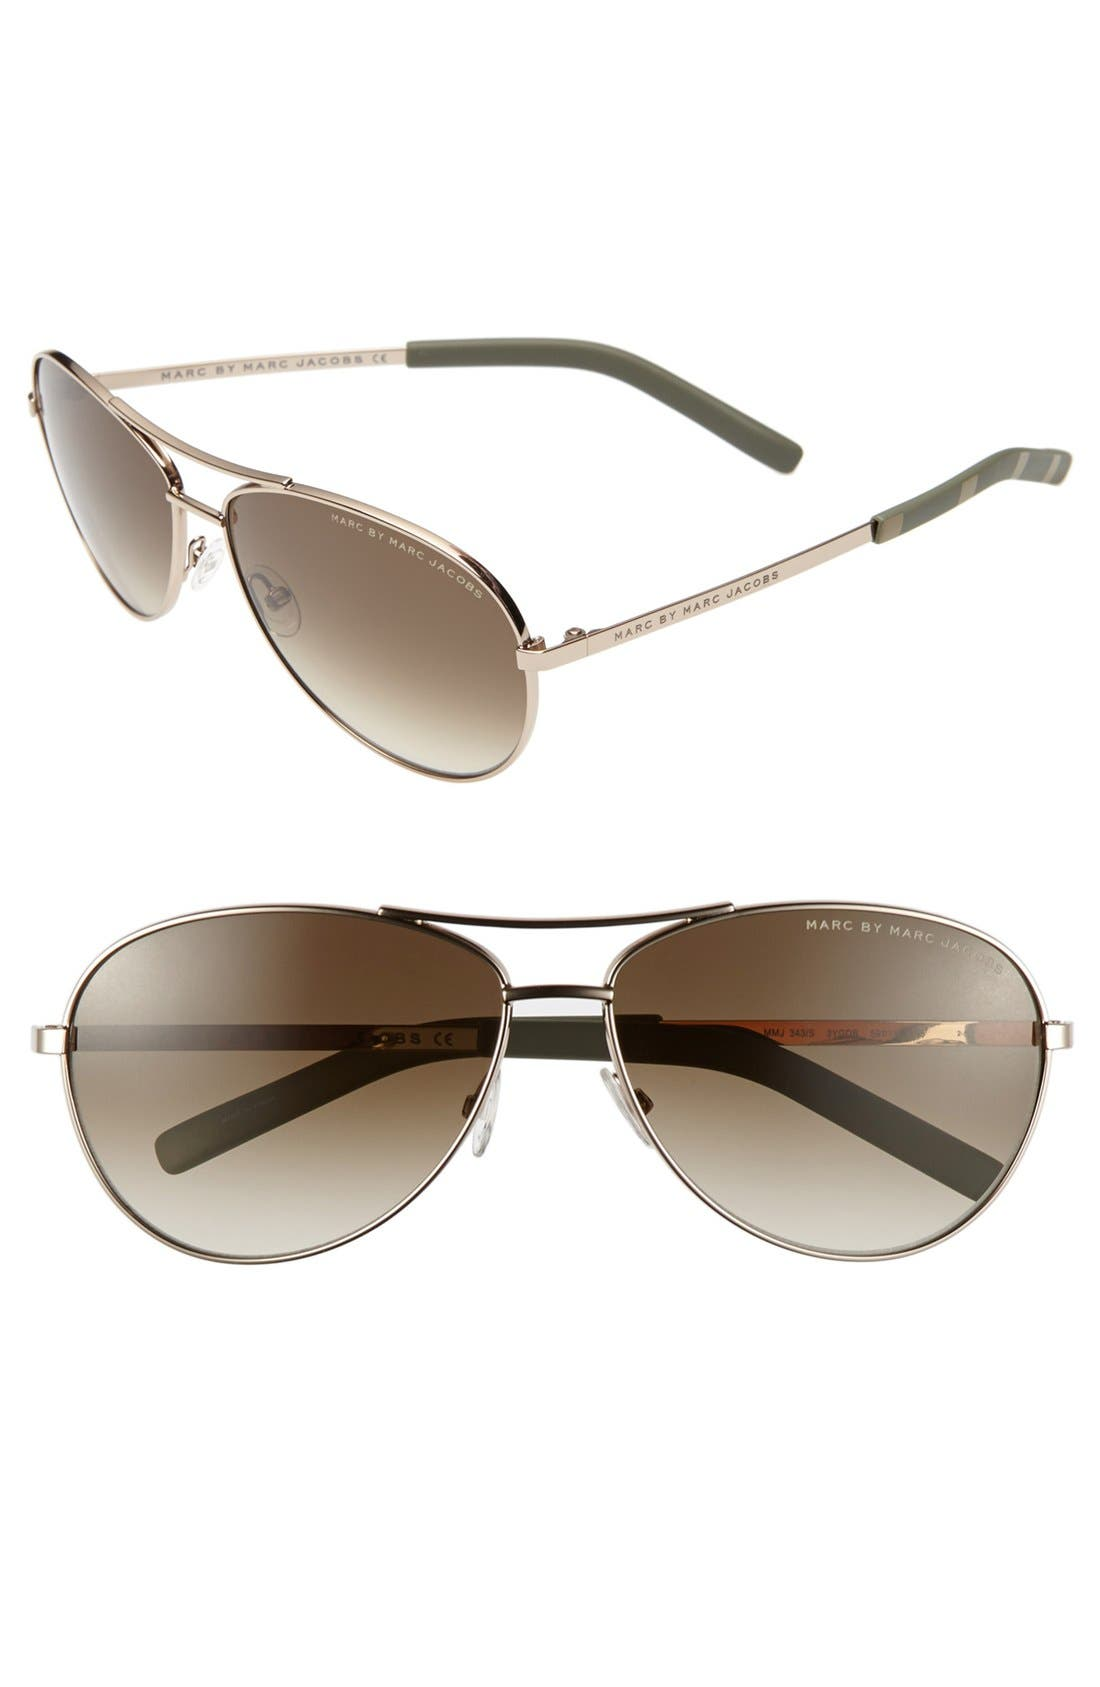 Main Image - MARC BY MARC JACOBS 'Angelina' 61mm Sunglasses